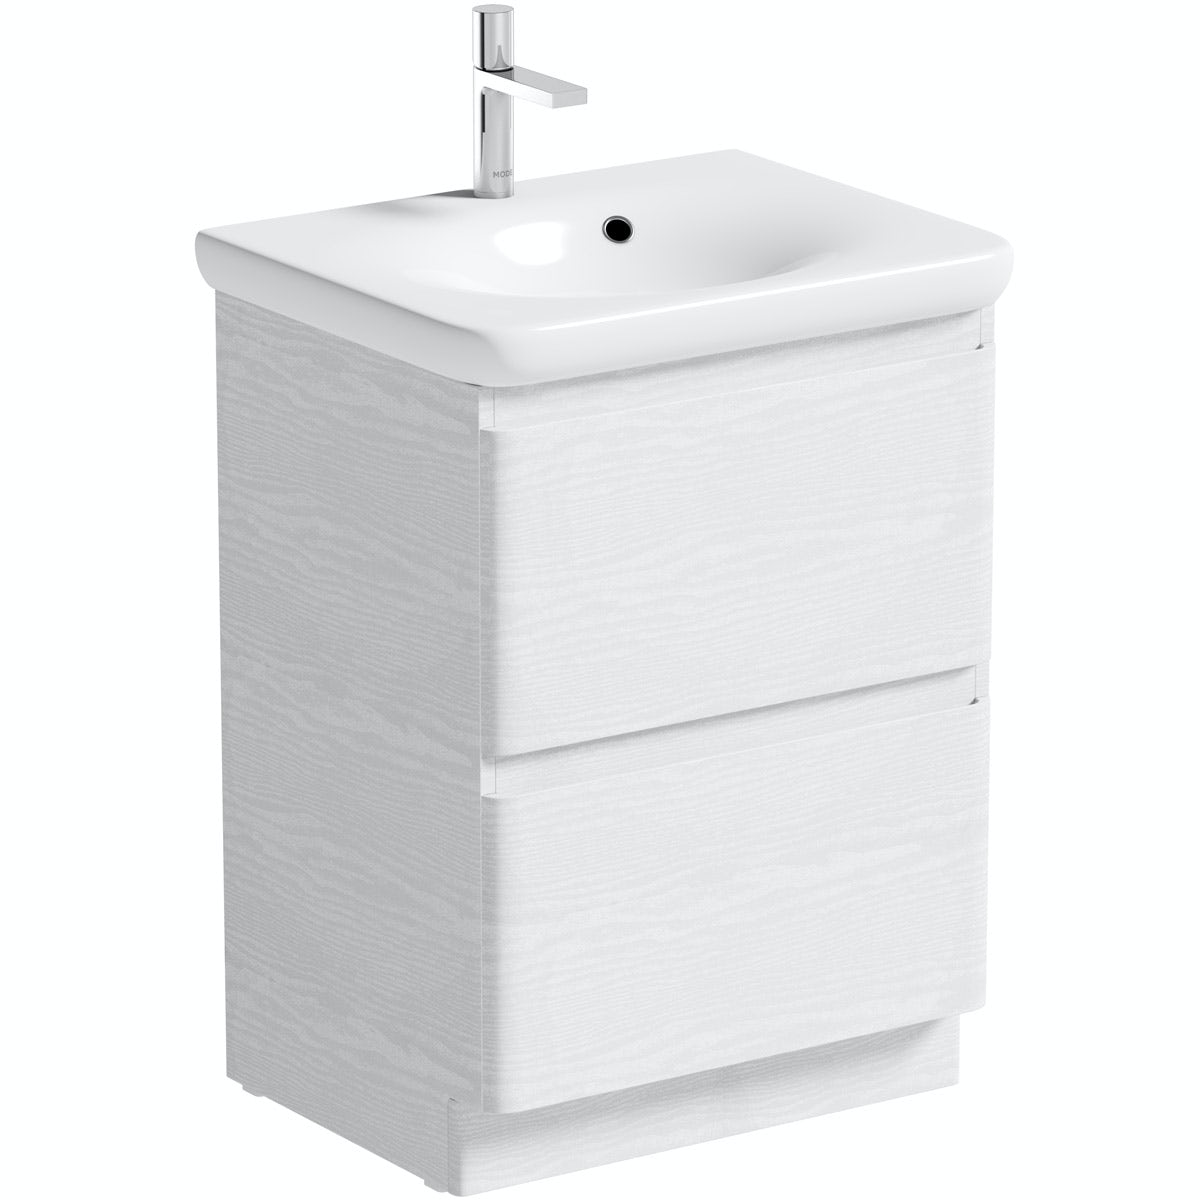 Mode Heath white LED floor standing unit and basin 600mm